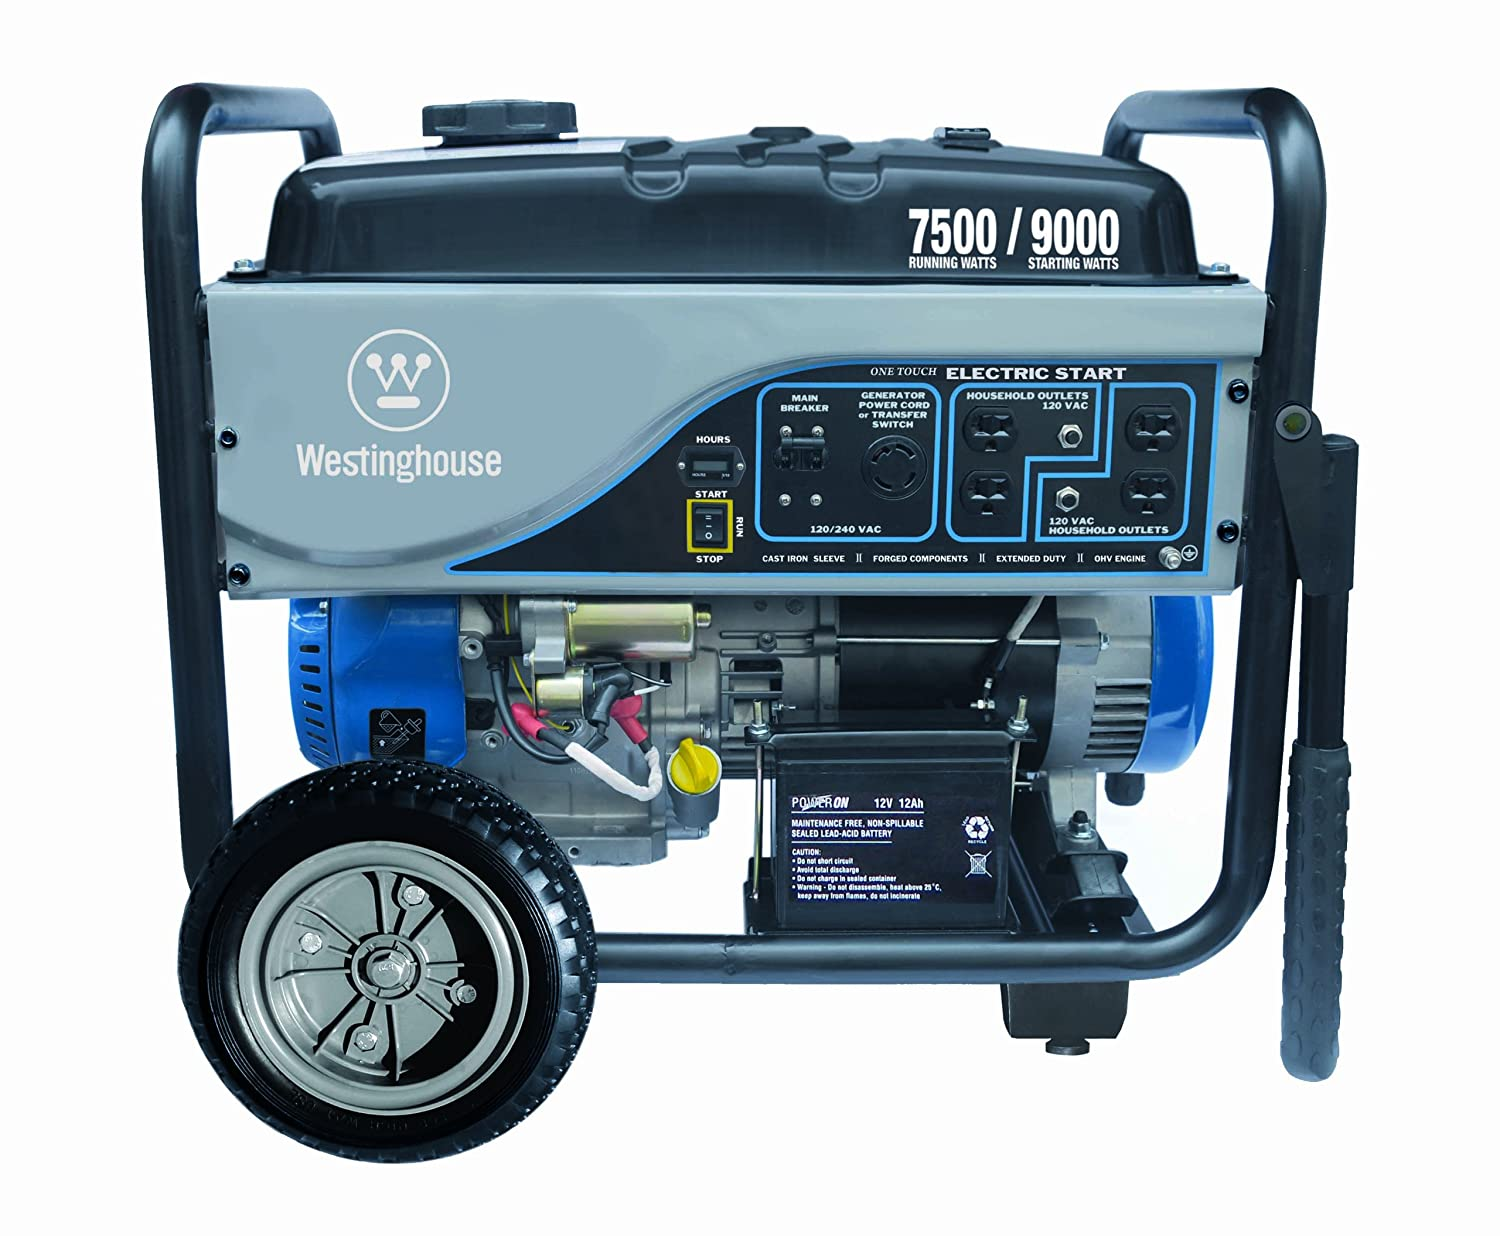 Westinghouse WH7500E, 7500 Running Watts/9000 Starting Watts, Gas Powered Portable Generator